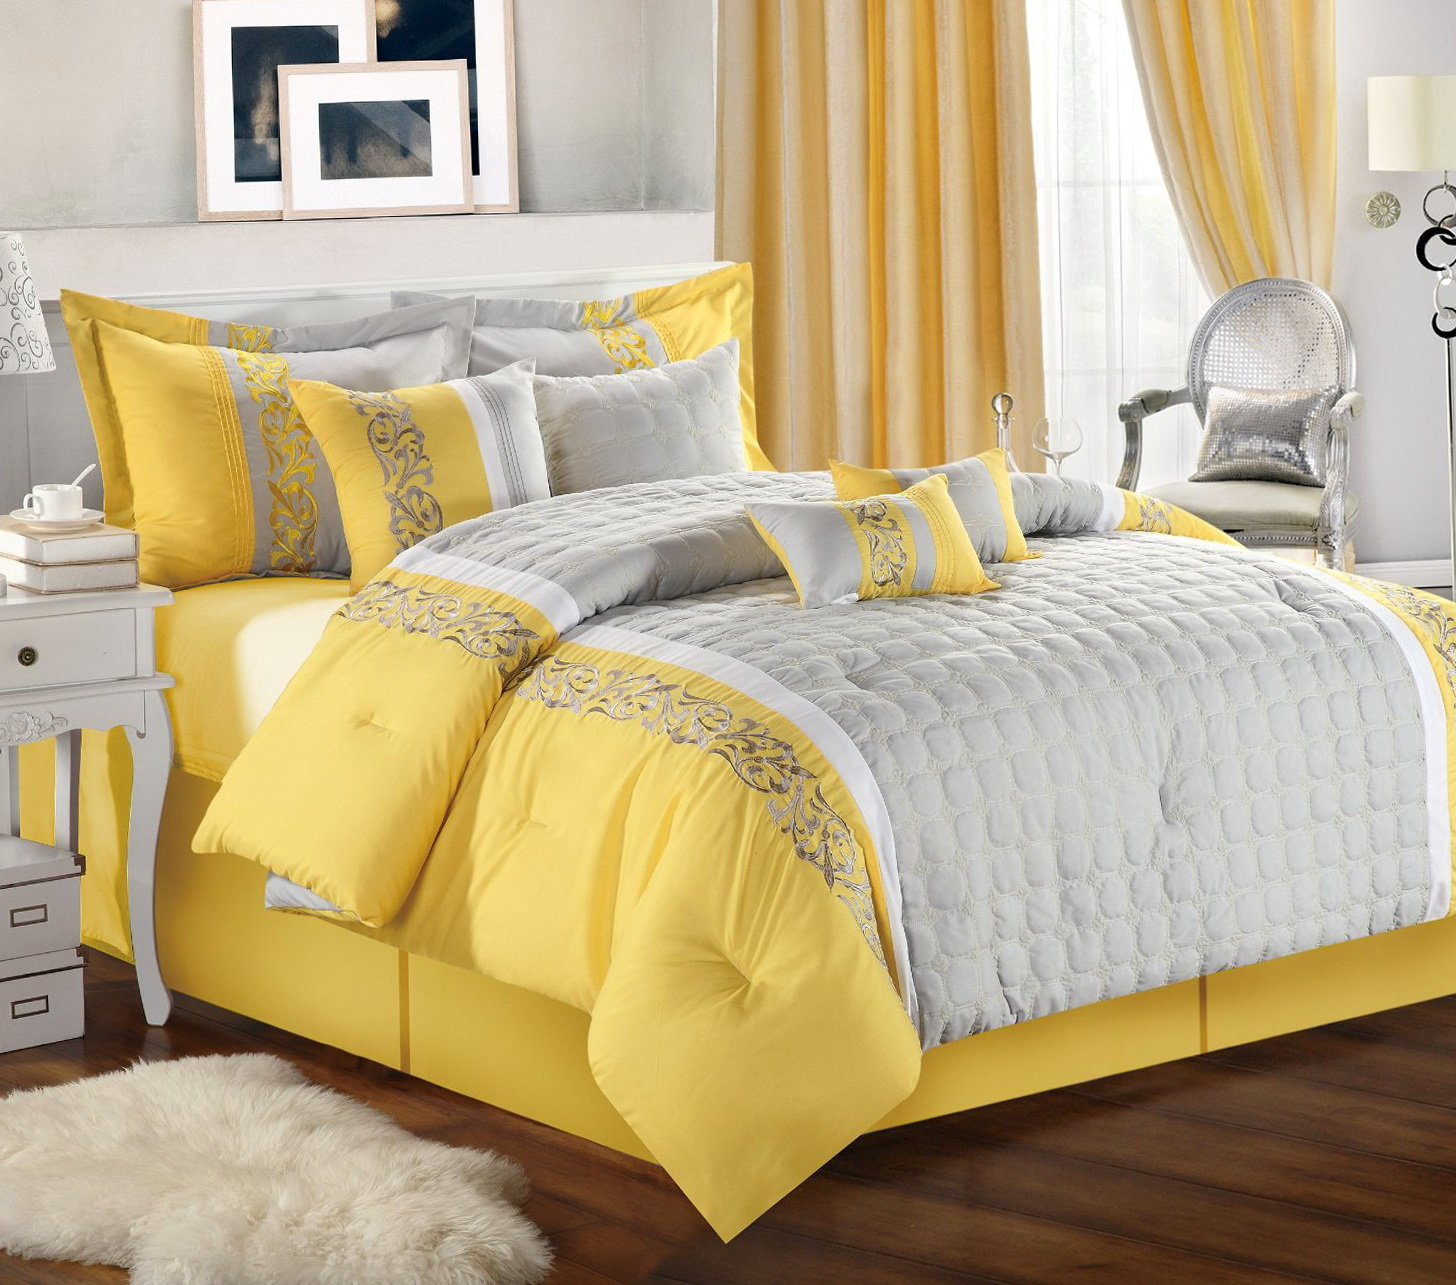 King Size Bedding Sets For Cheap